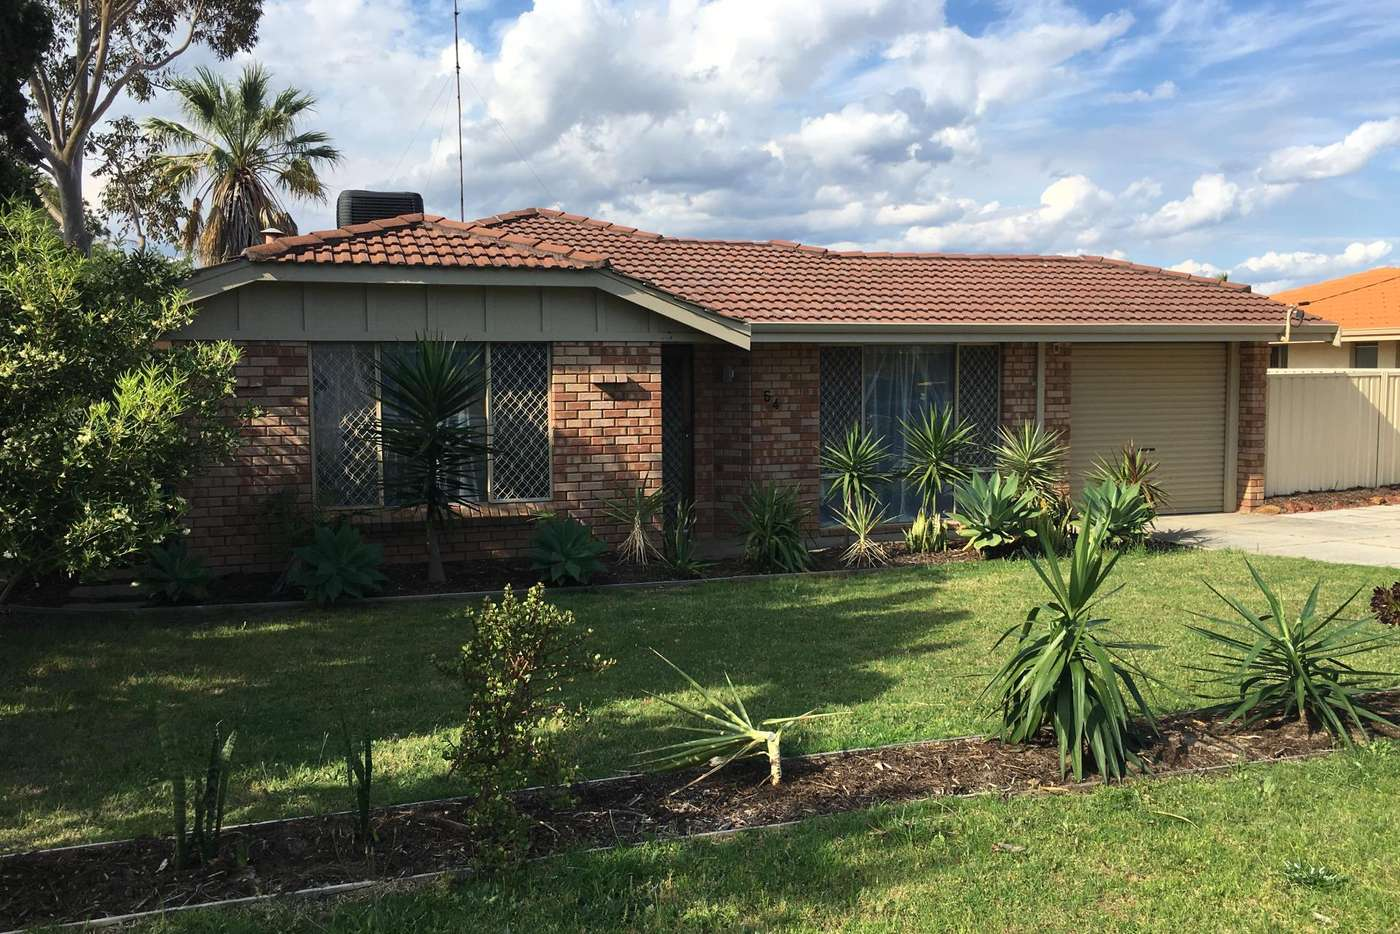 Main view of Homely house listing, 54 Tapping Way, Quinns Rocks WA 6030